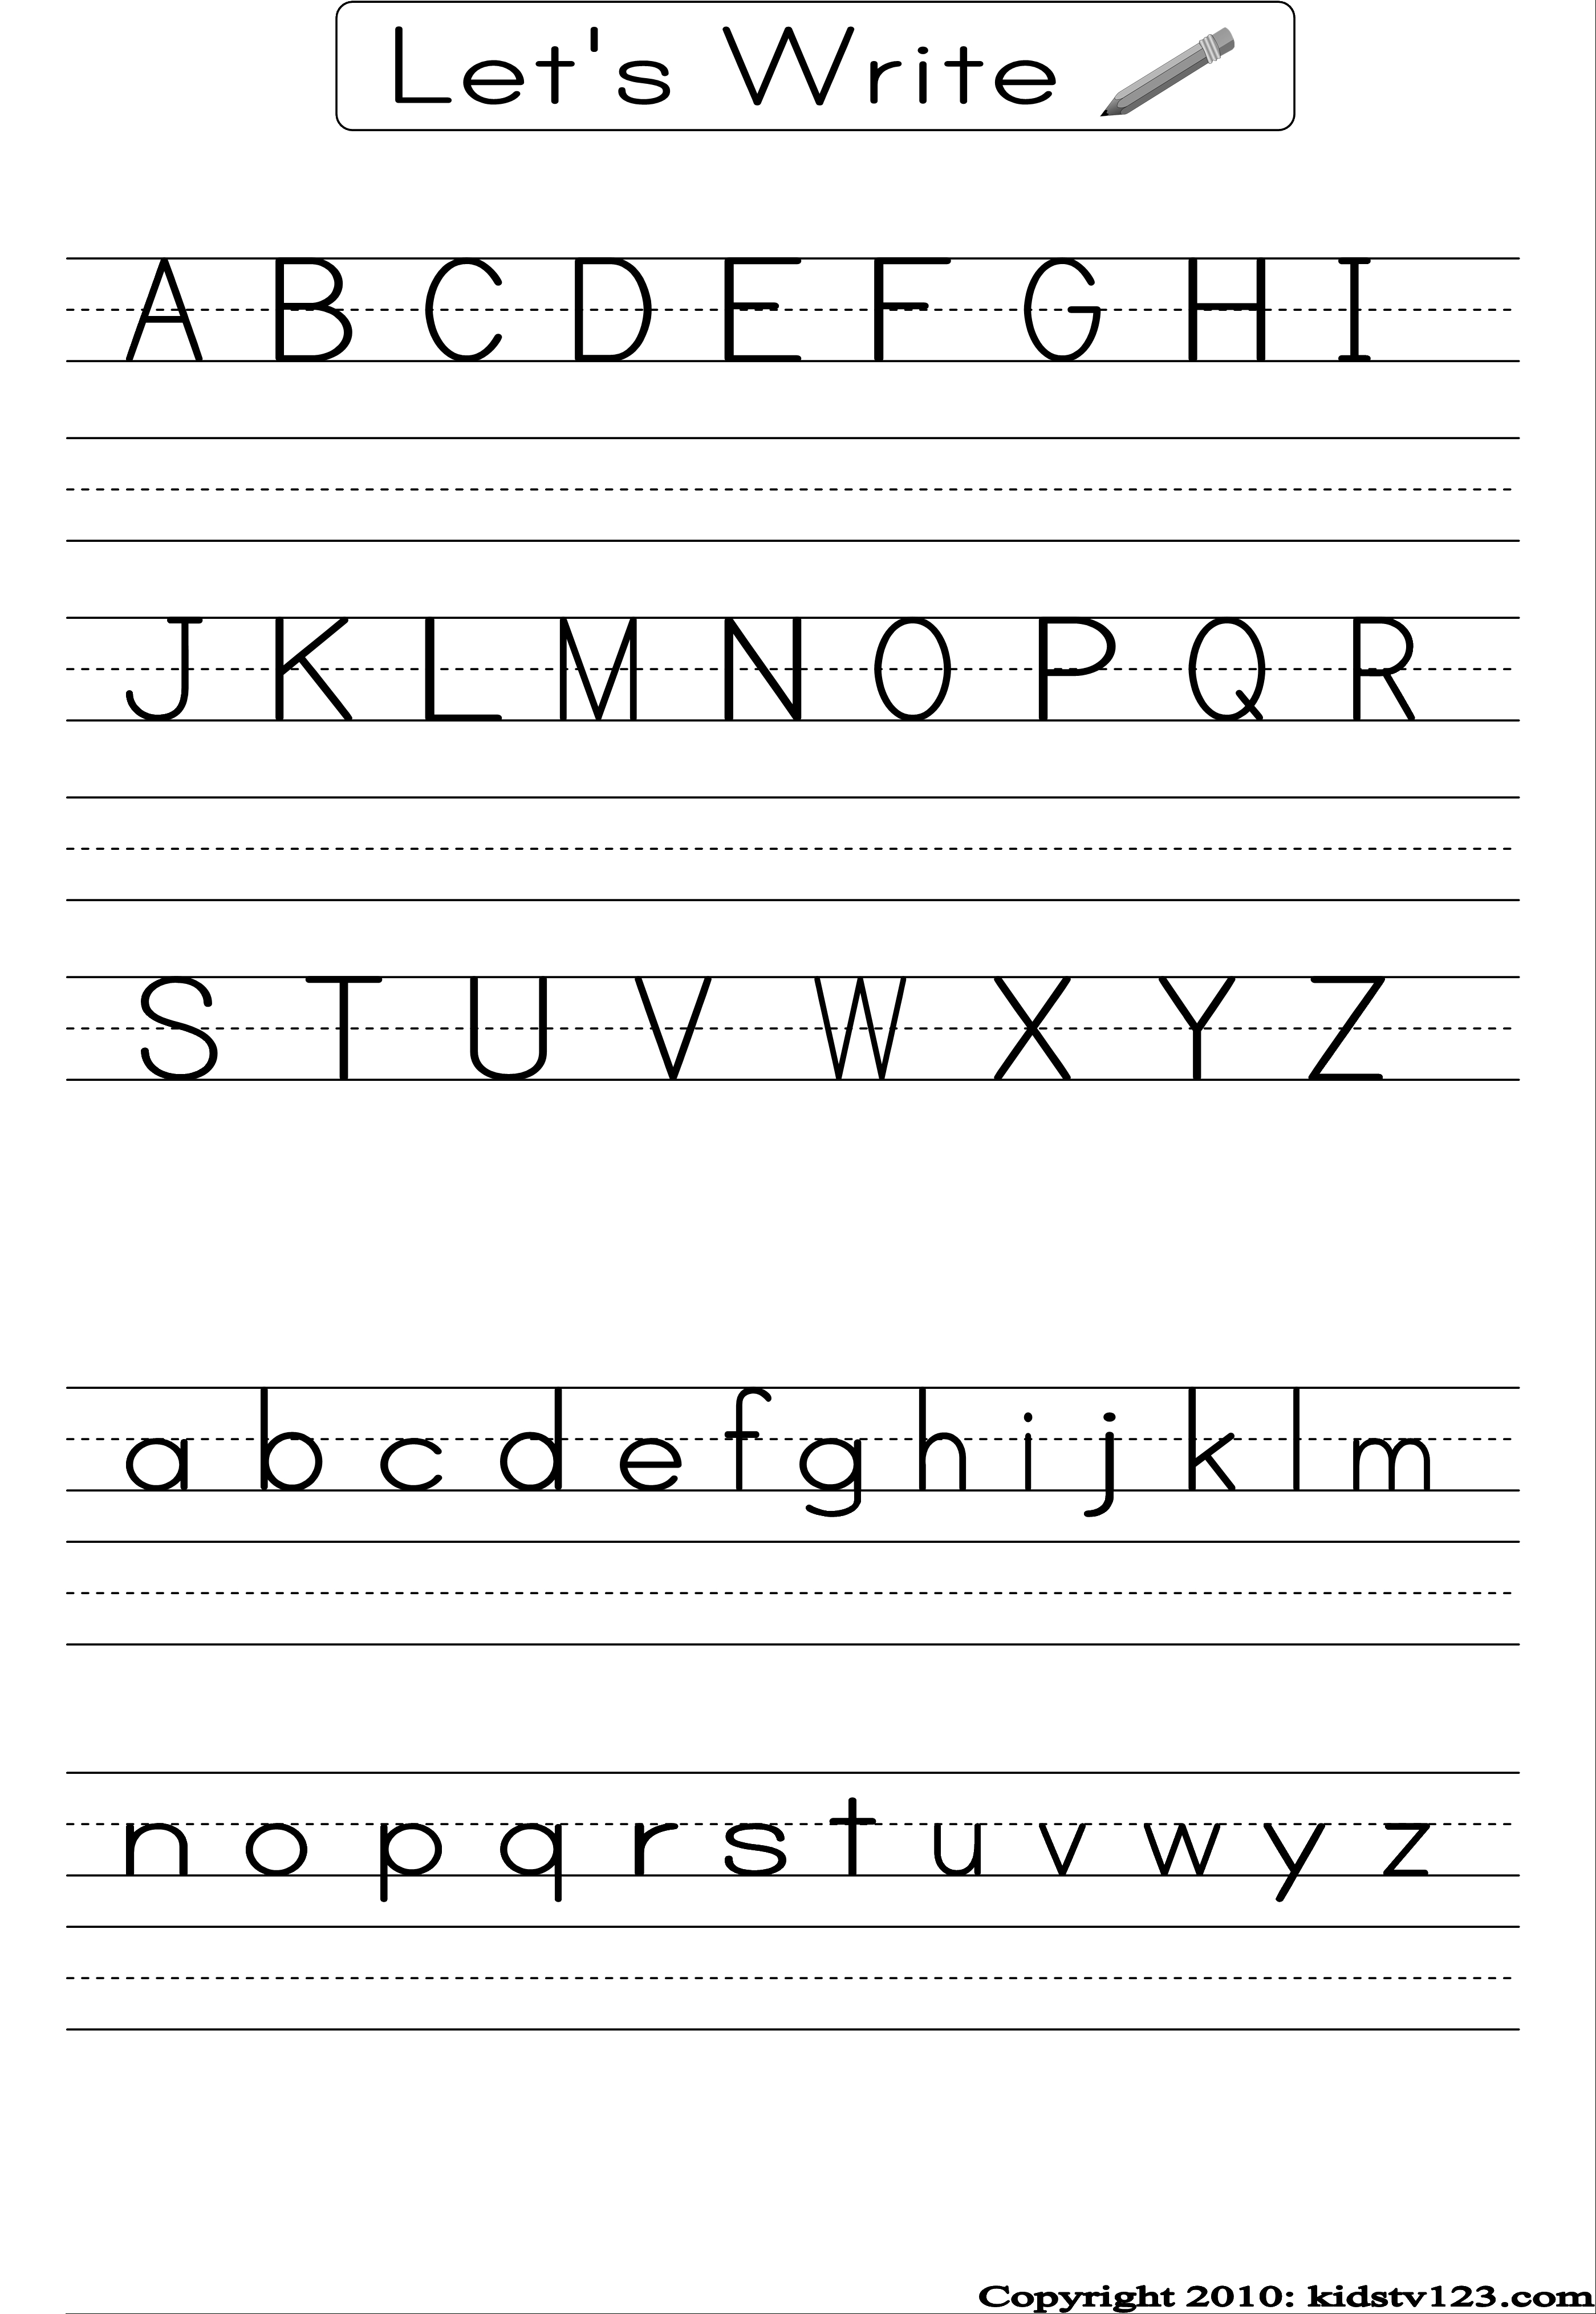 Alphabet Writing Practice Sheet | Edu-Fun | Alphabet Worksheets - Free Printable Handwriting Sheets For Kindergarten